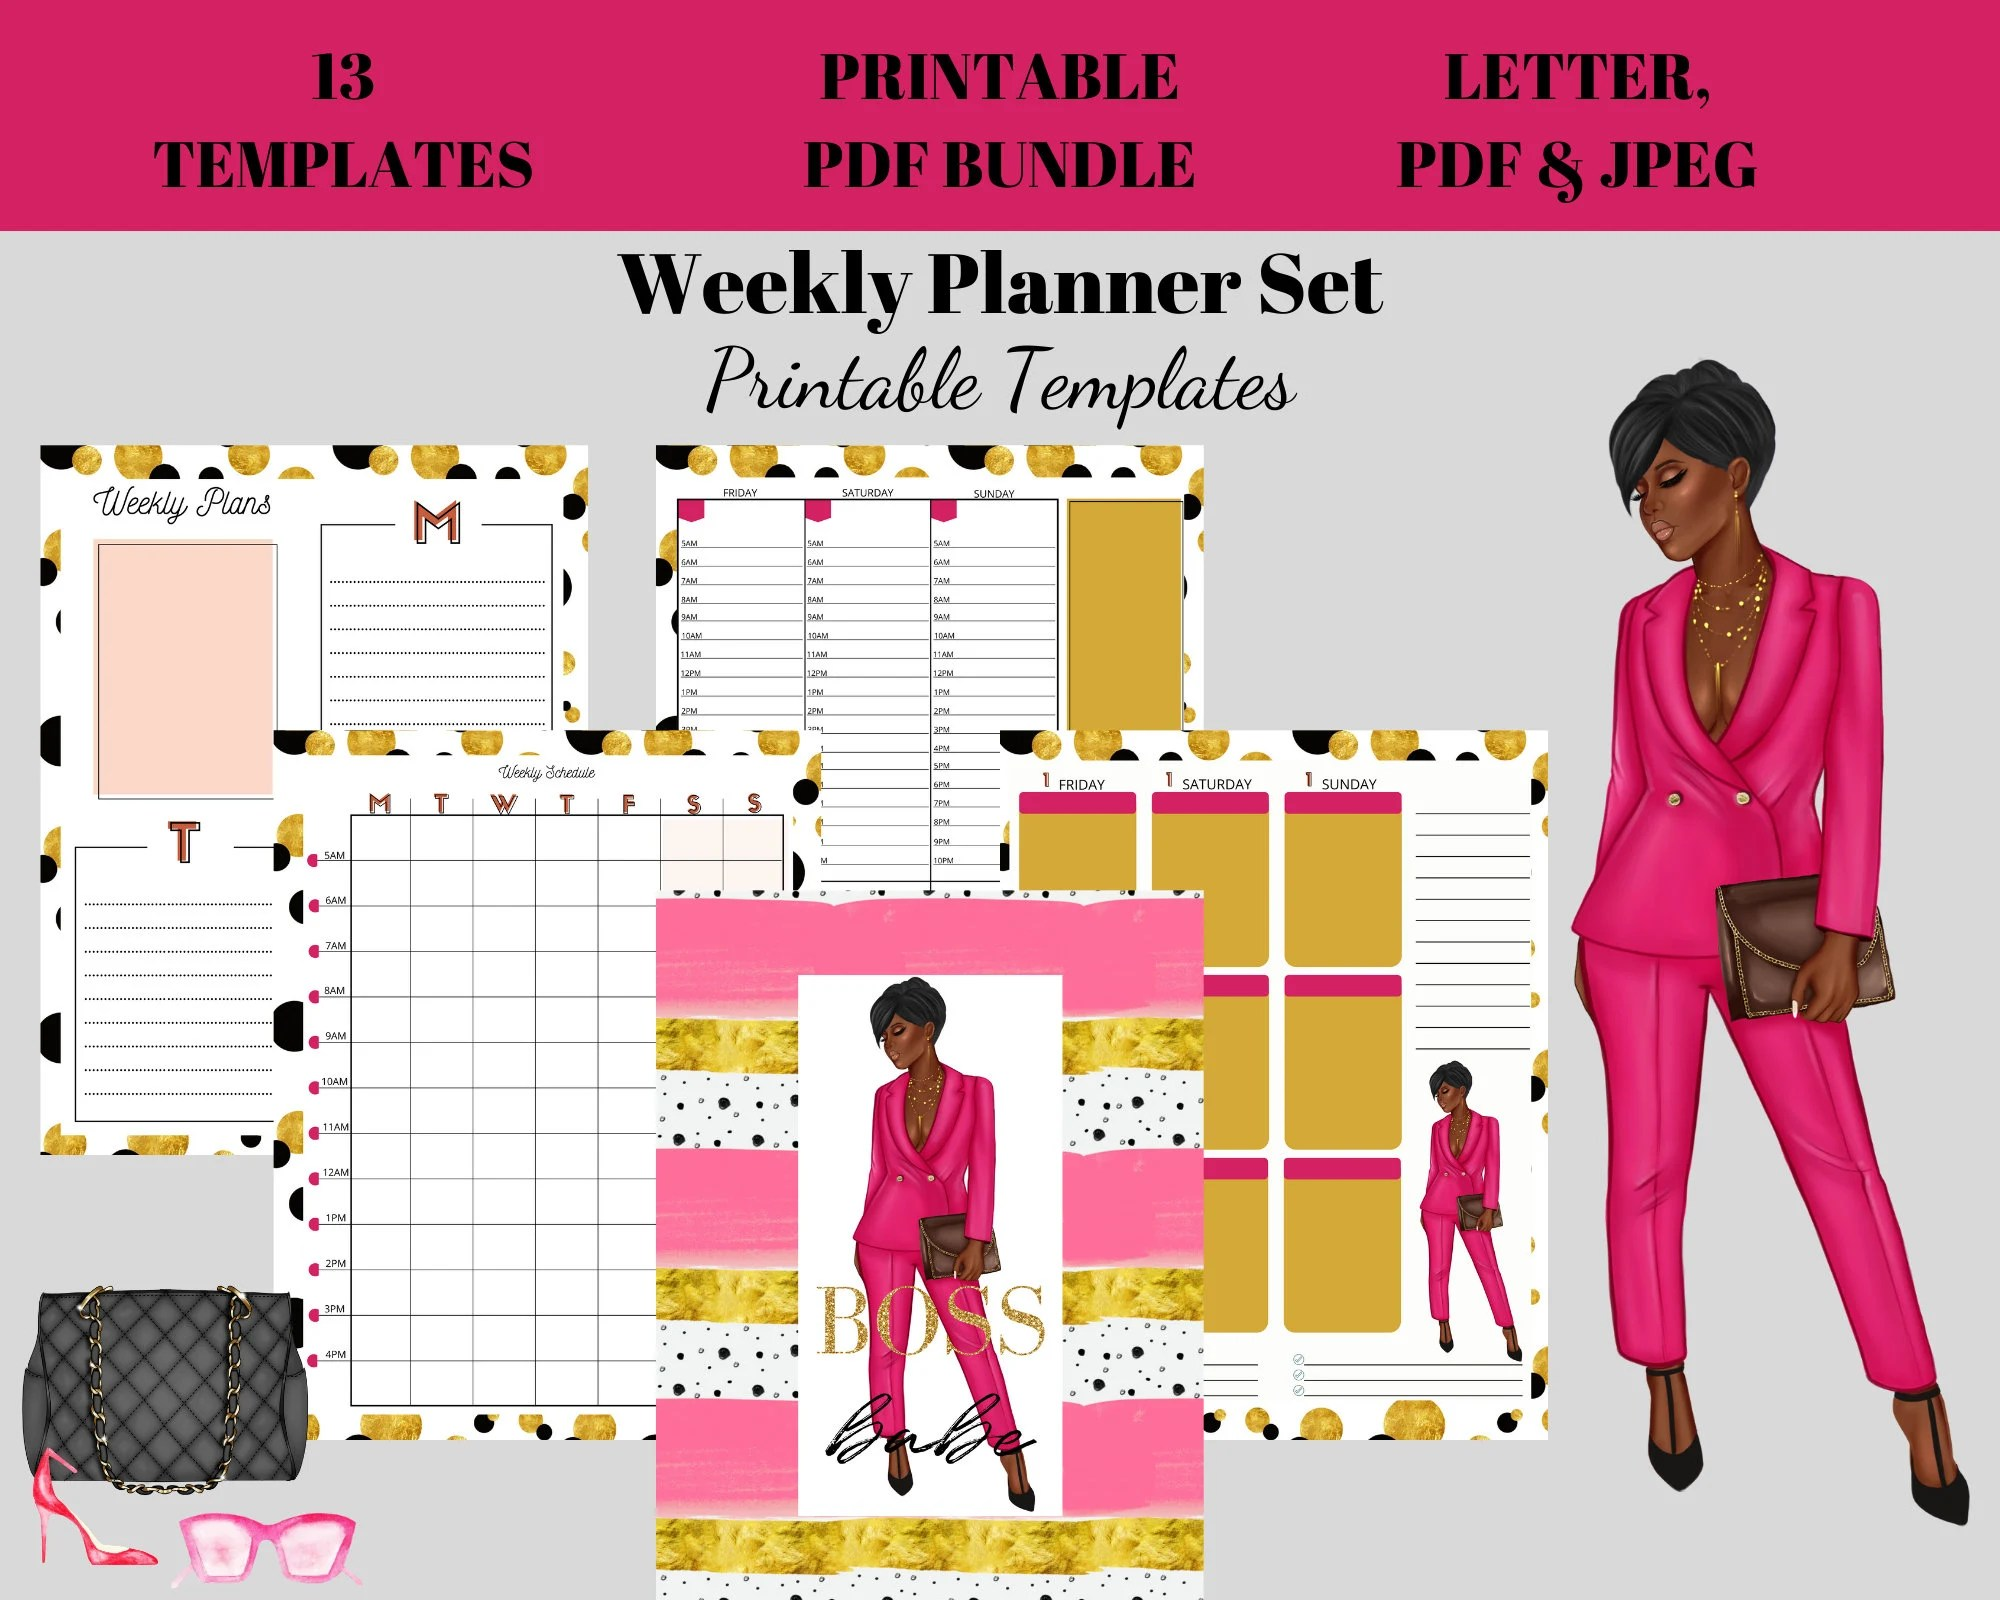 Weekly Hourly Planner Kit Printable Week Plan Templates